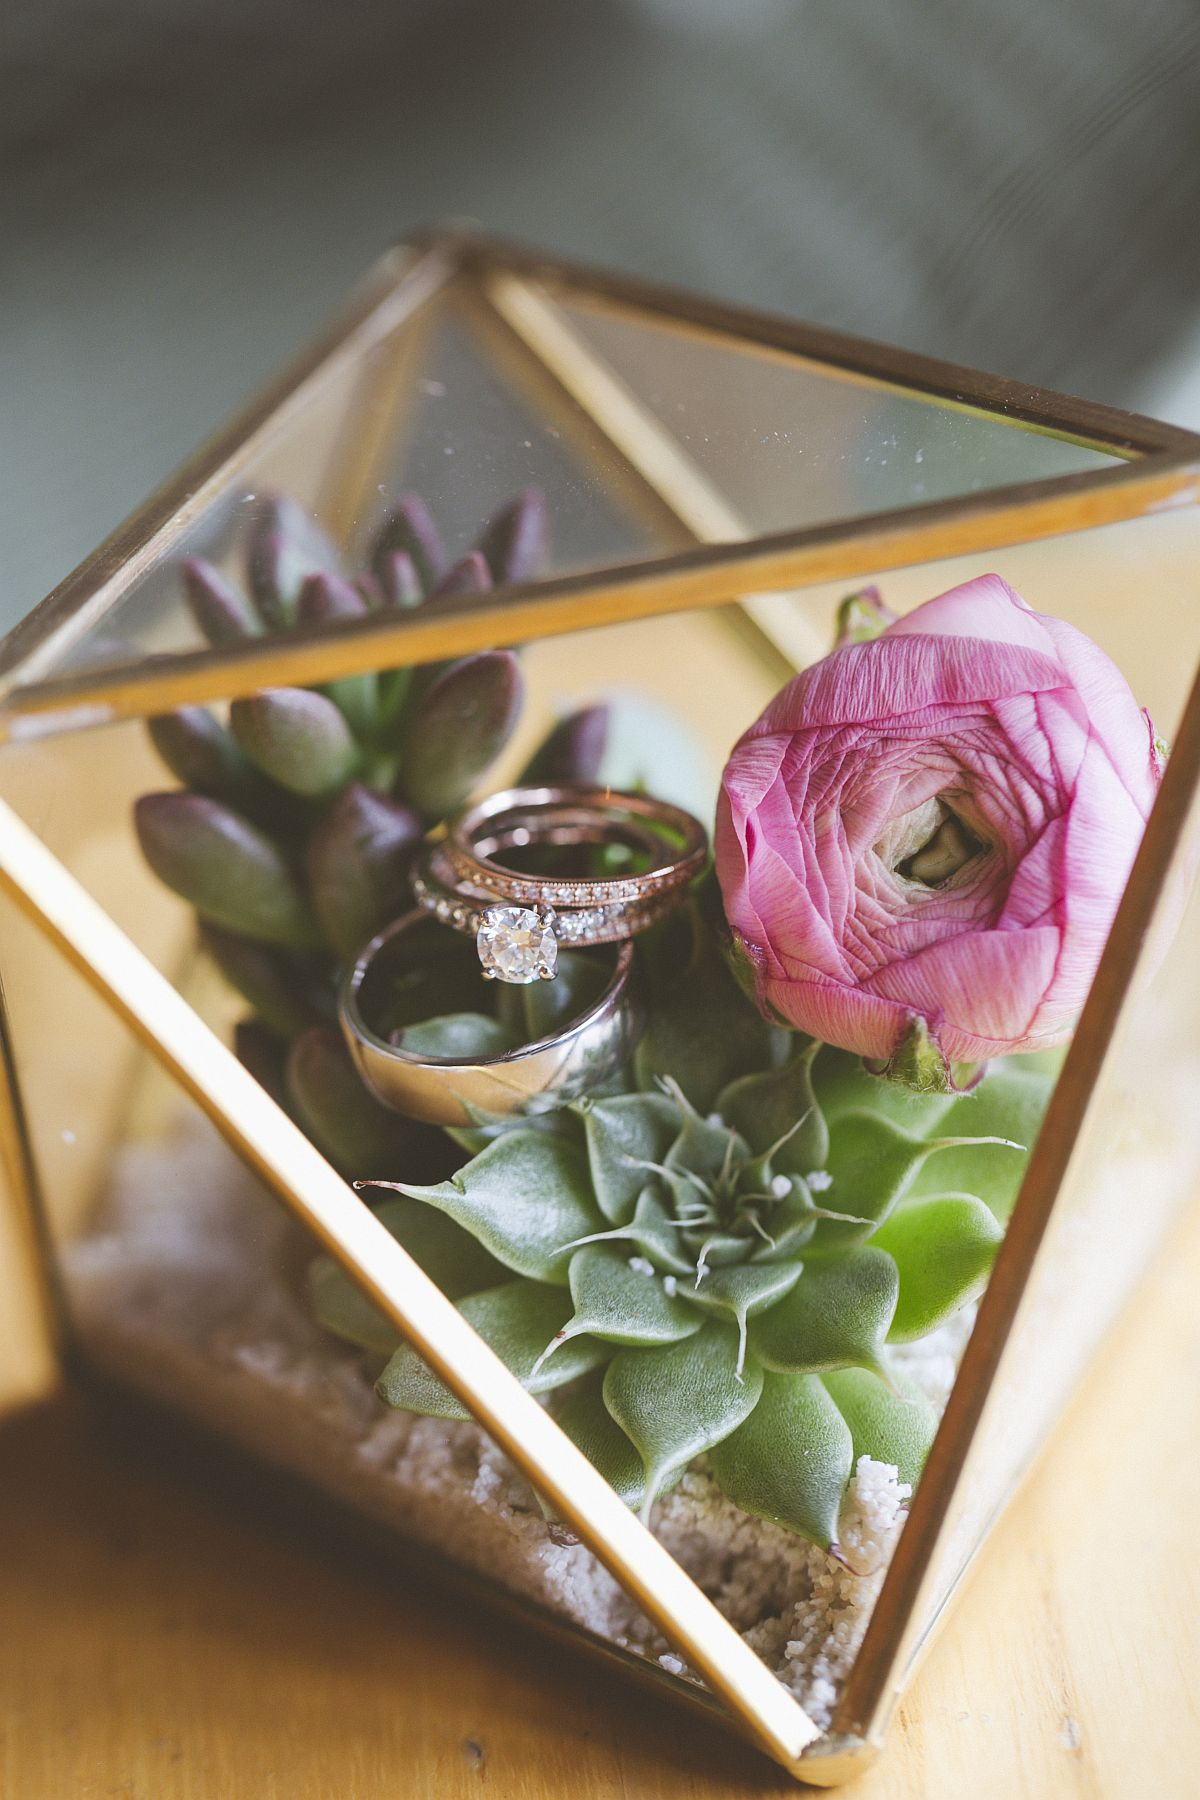 Gold geo terrarium box with wedding rings